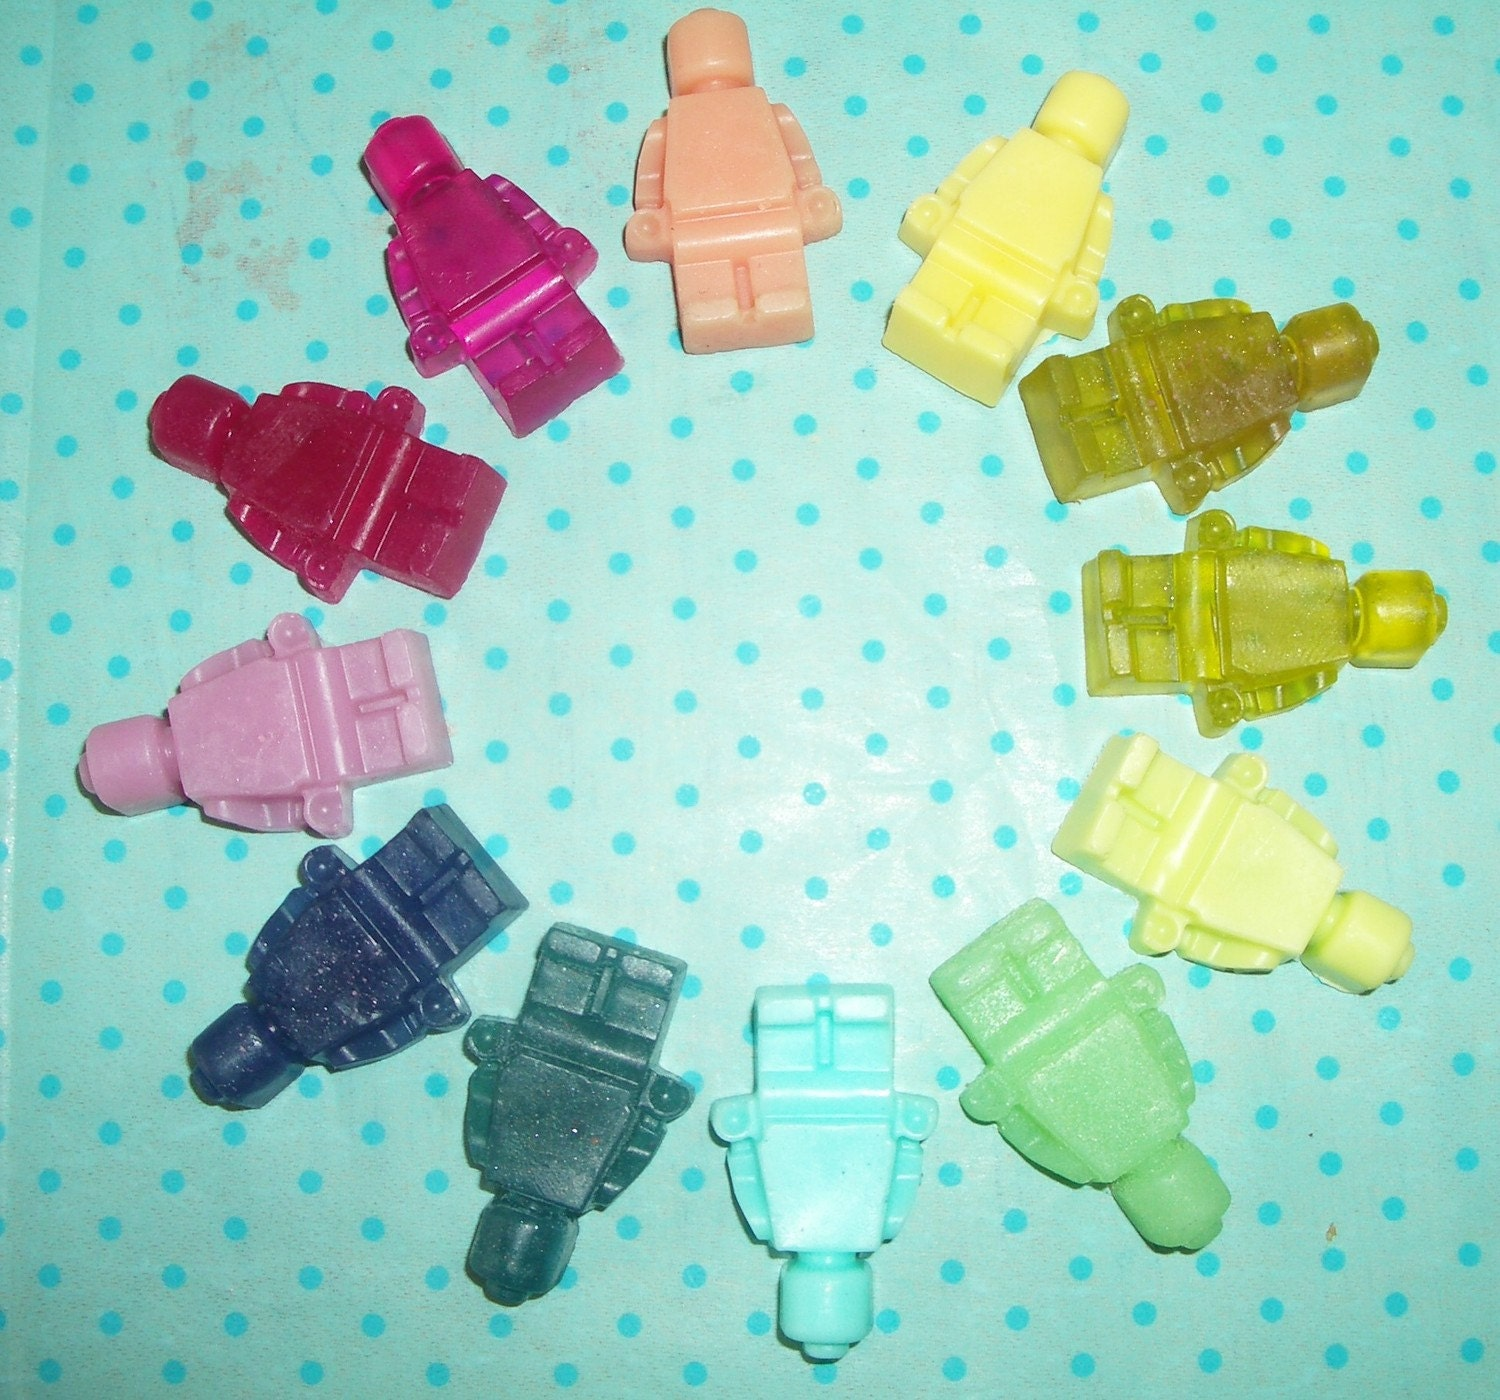 Brickman Mini Soaps Set of 12. - Pick Your Colors and Scents